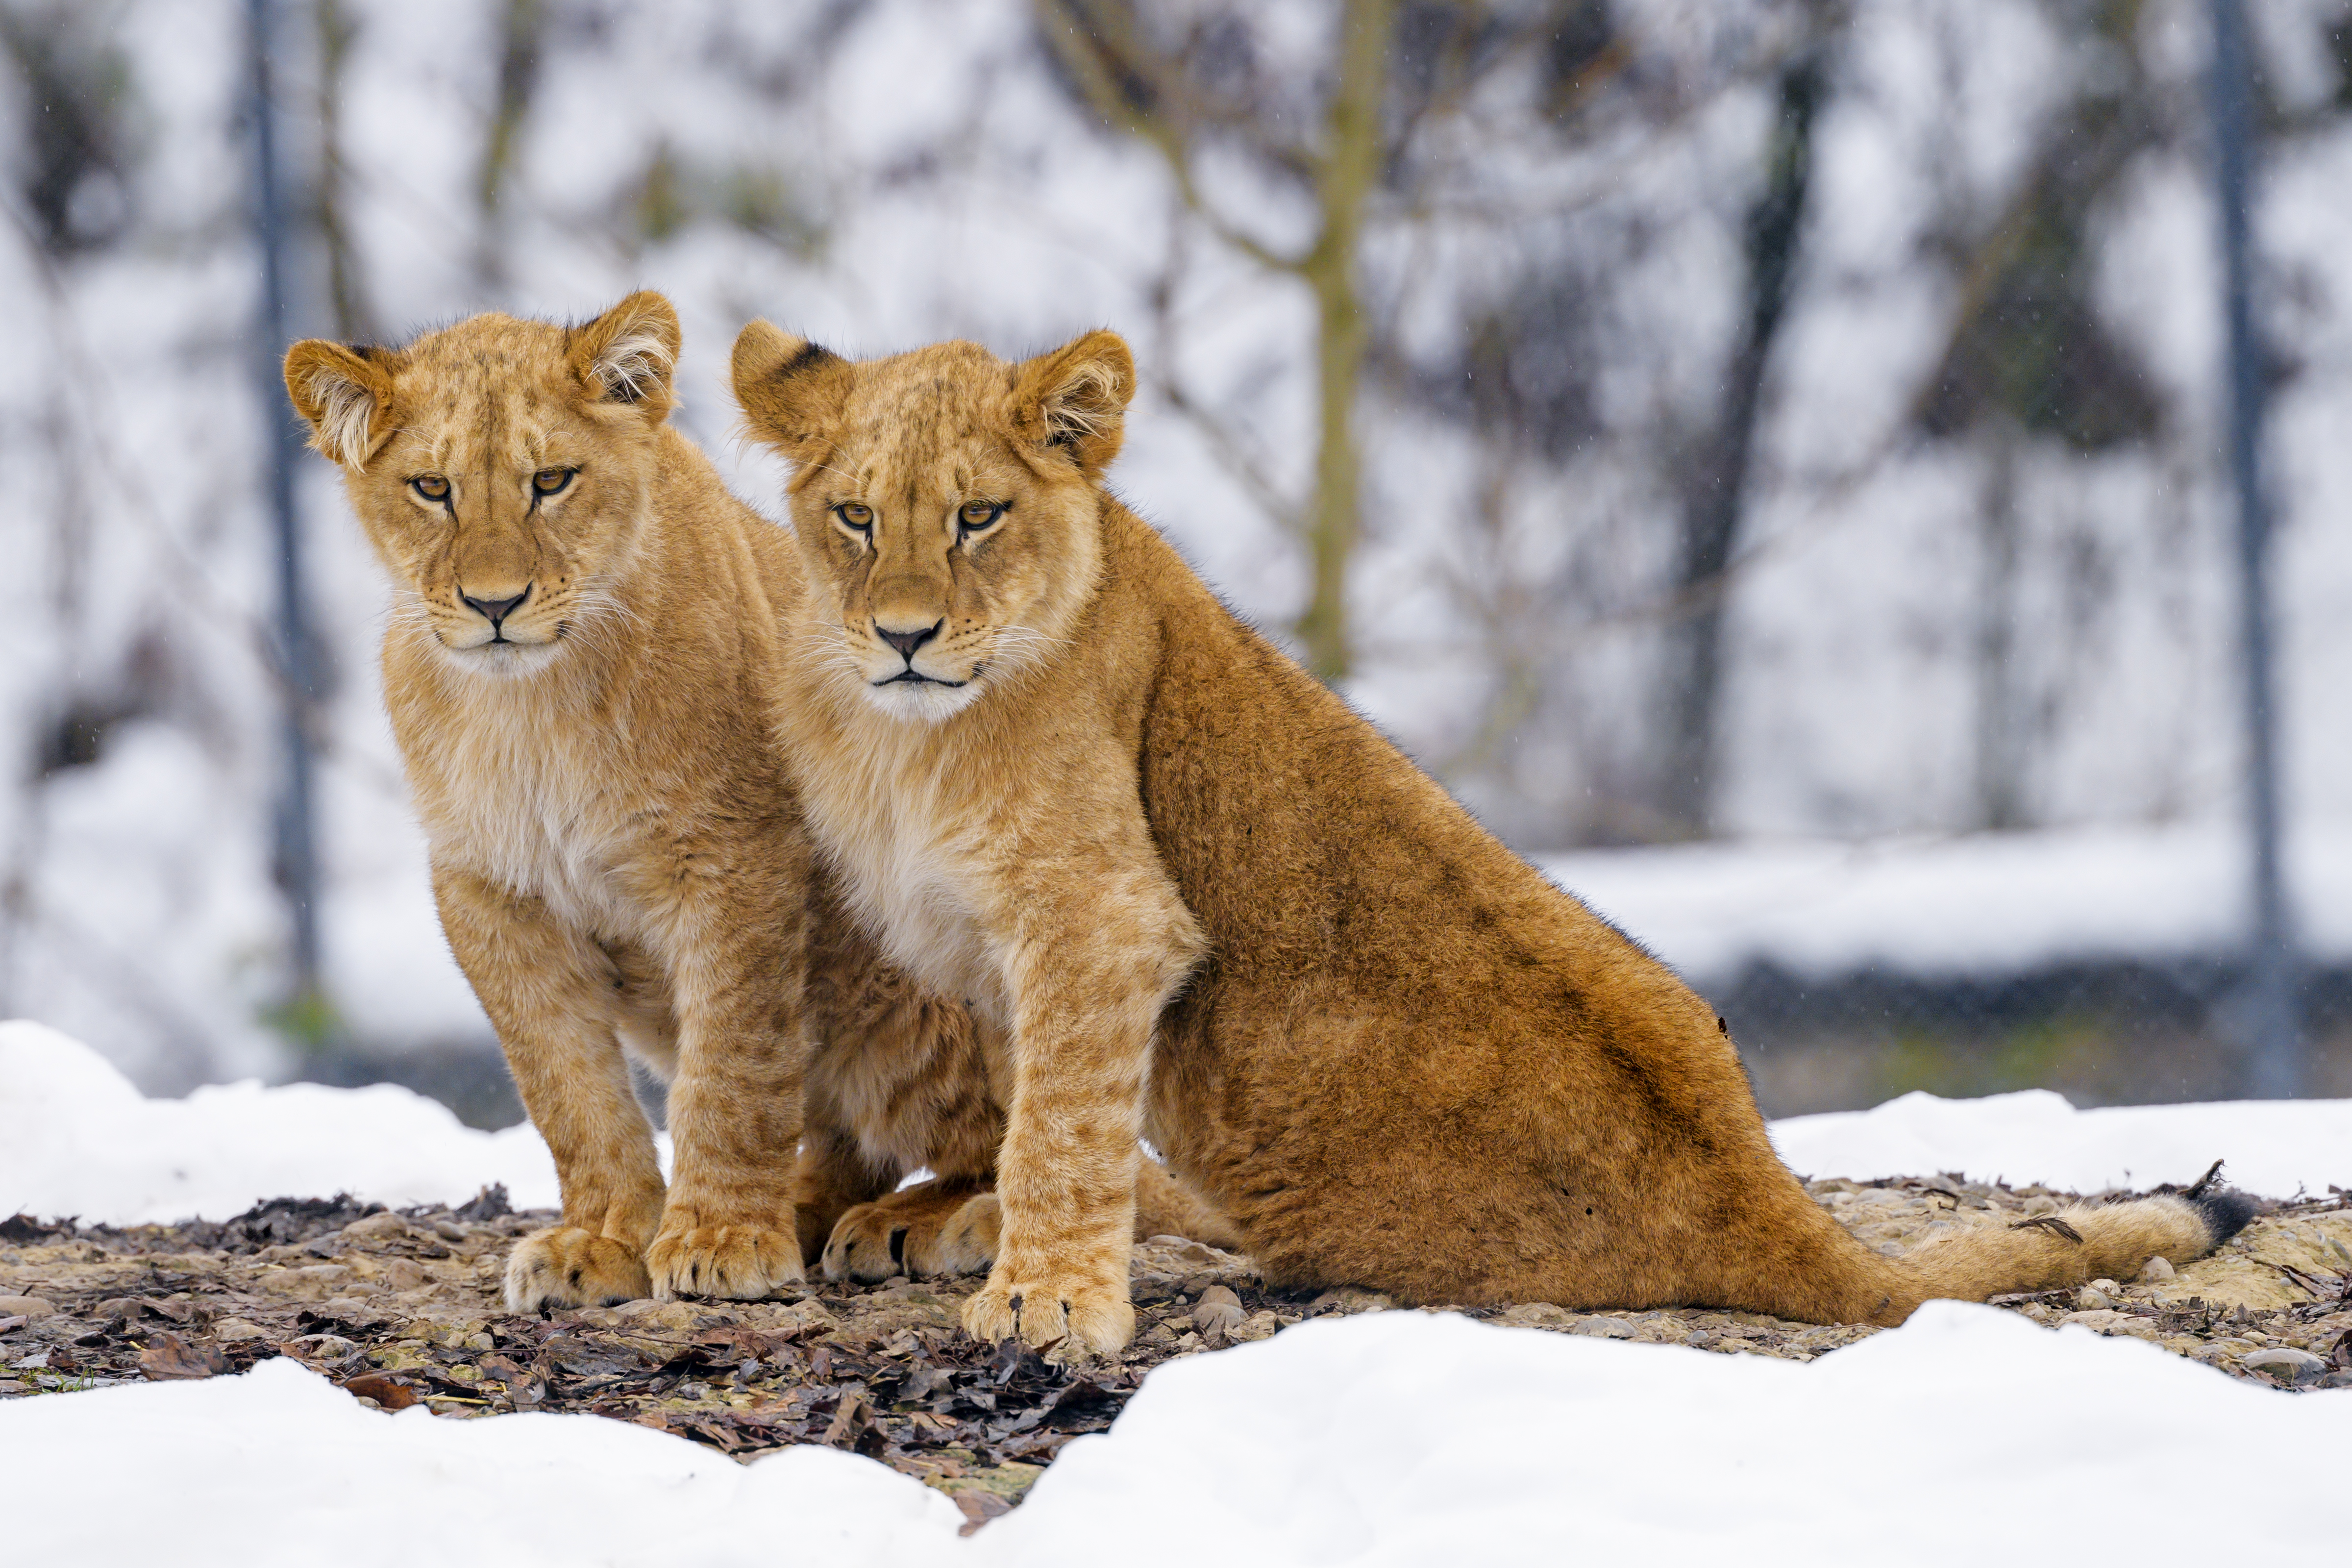 129734 download wallpaper Animals, Lion Cubs, Big Cat, Wildlife, Lions screensavers and pictures for free